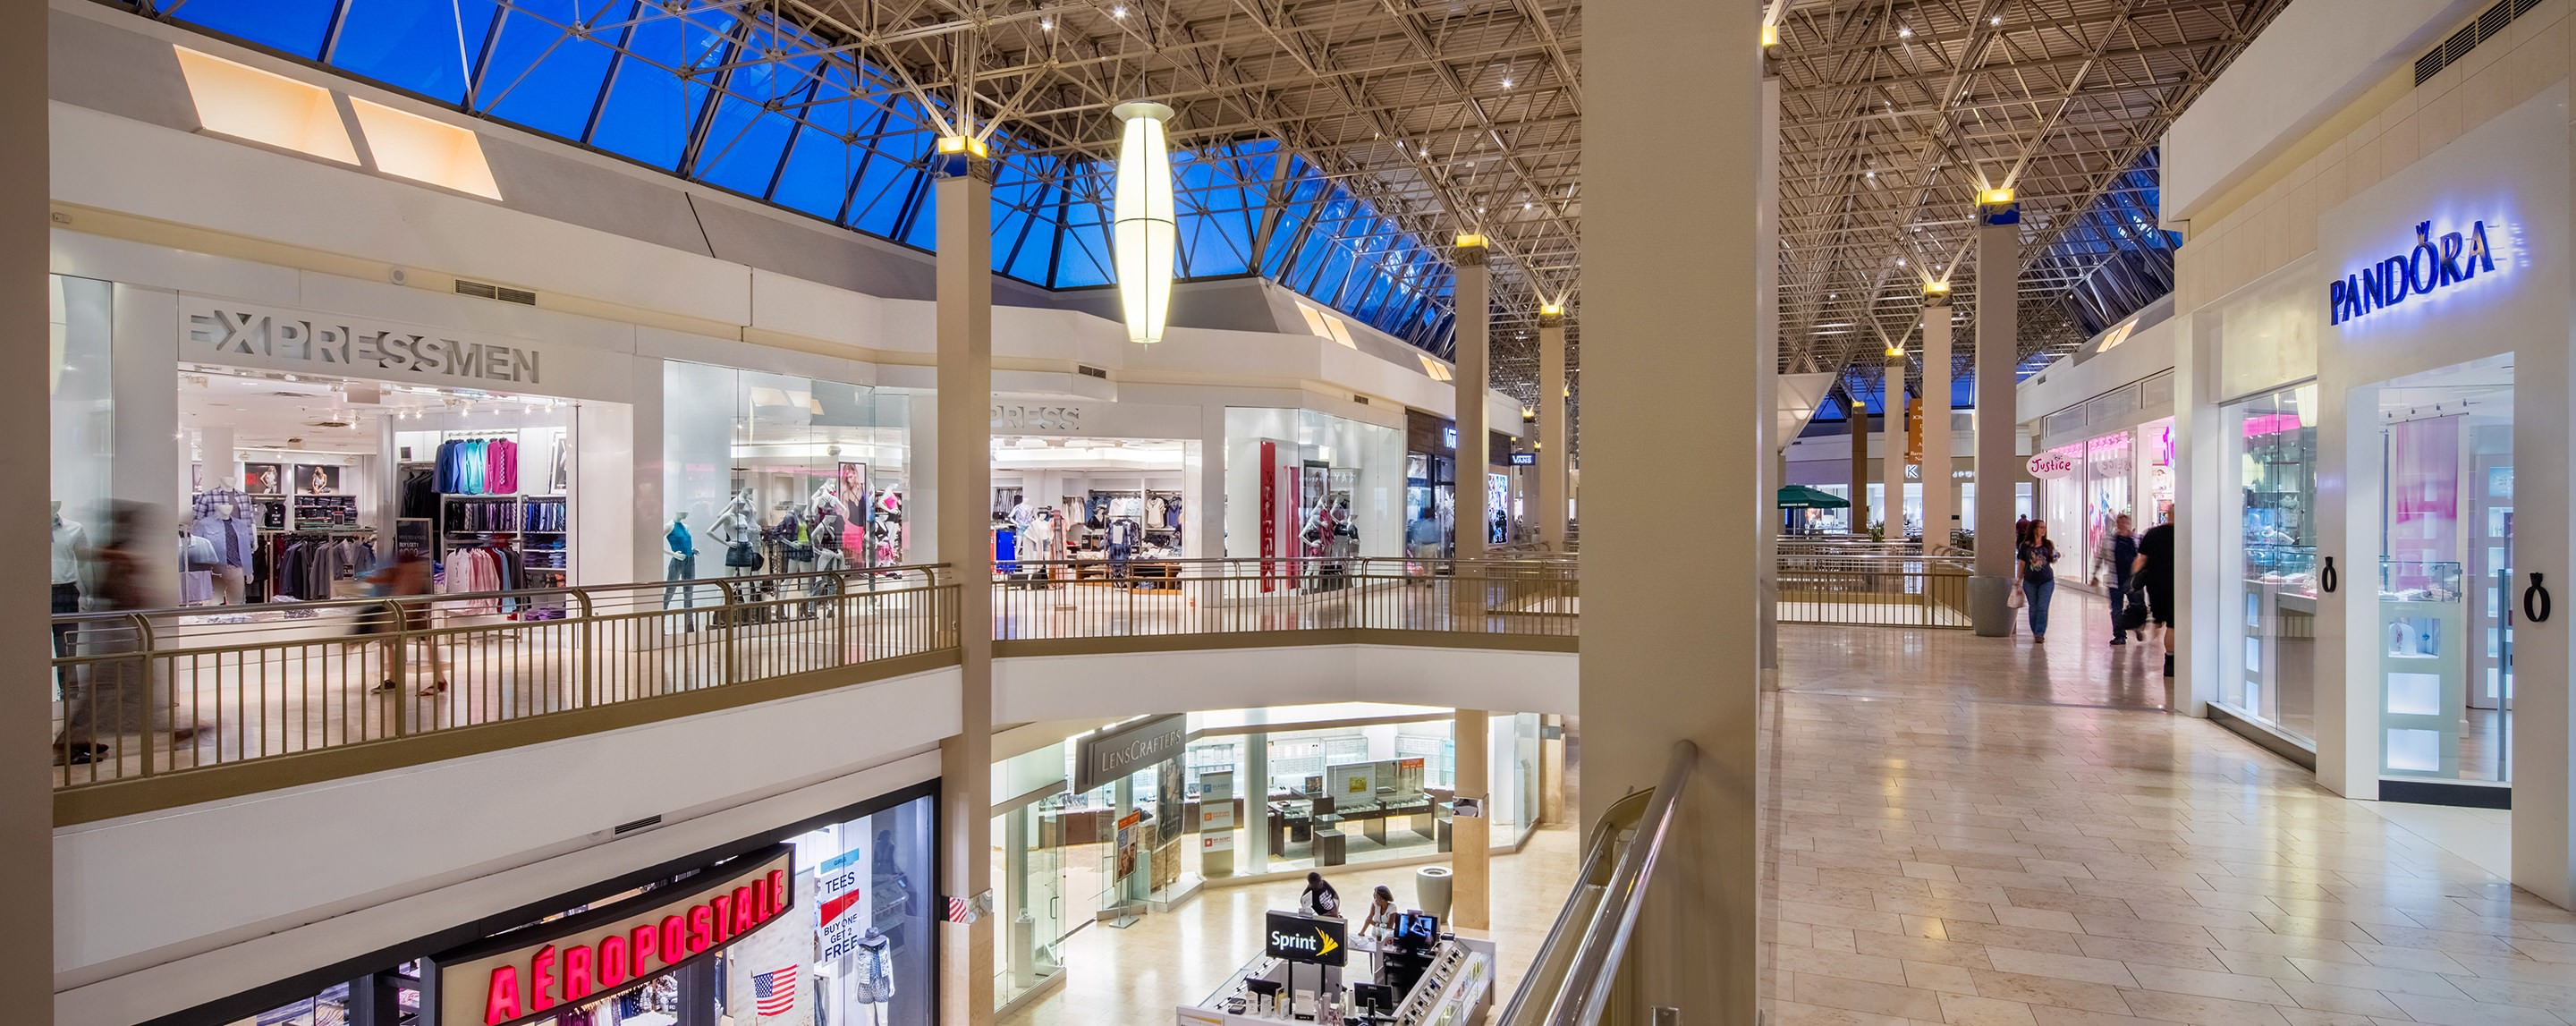 Augusta Mall's interior walkways show shoppers all the storefronts and can see everything in the common area below.